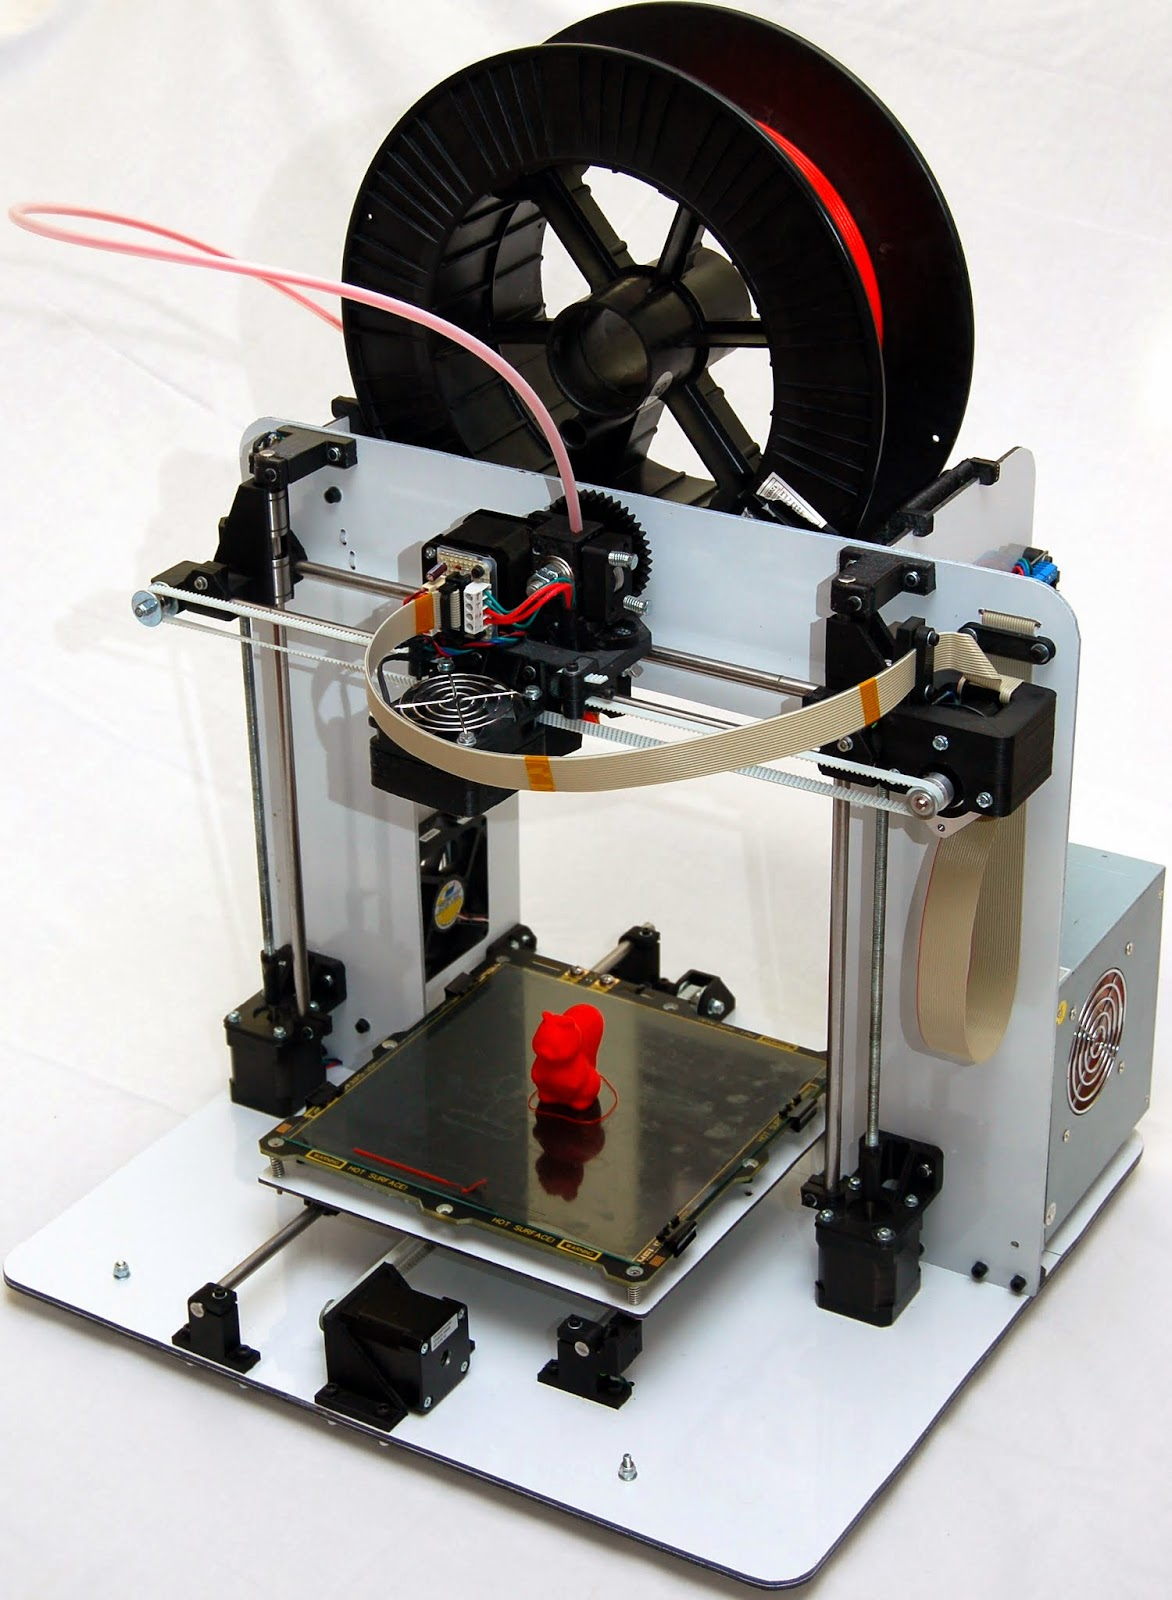 Ivors 3d Printing Blog October 2013 Pushing The Curve Reprap Printed Circuit Boards Dreams It Prints Very Well And Is Faster More Precise Than My Older Printer New Electronics Also Allows Greater Automation Ive Previously Had